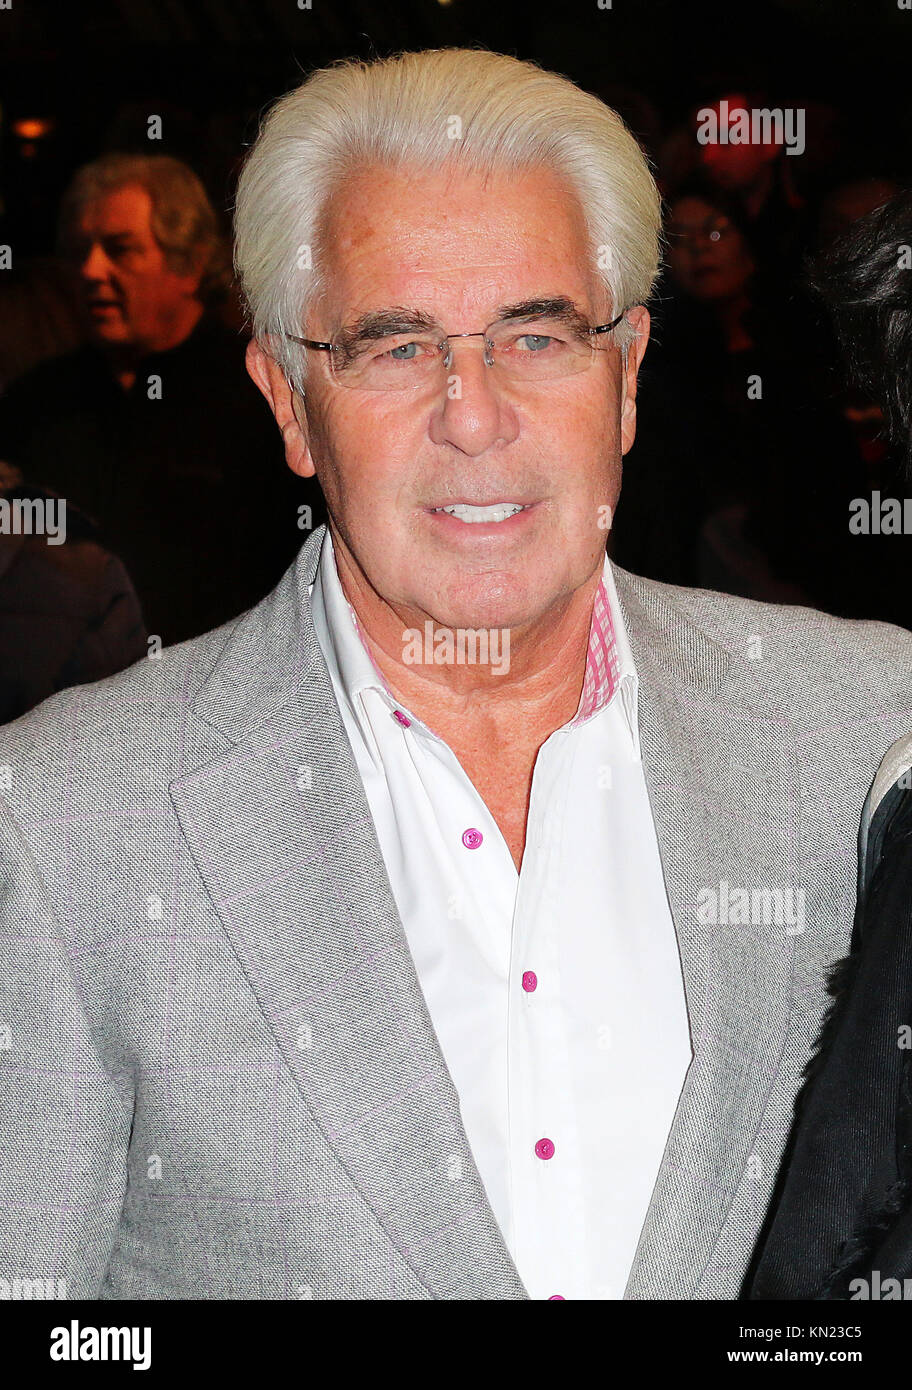 Max Clifford - Disgraced celebrity publicist  has died in hospital, aged 74, after collapsing in prison, 10 December - Stock Image